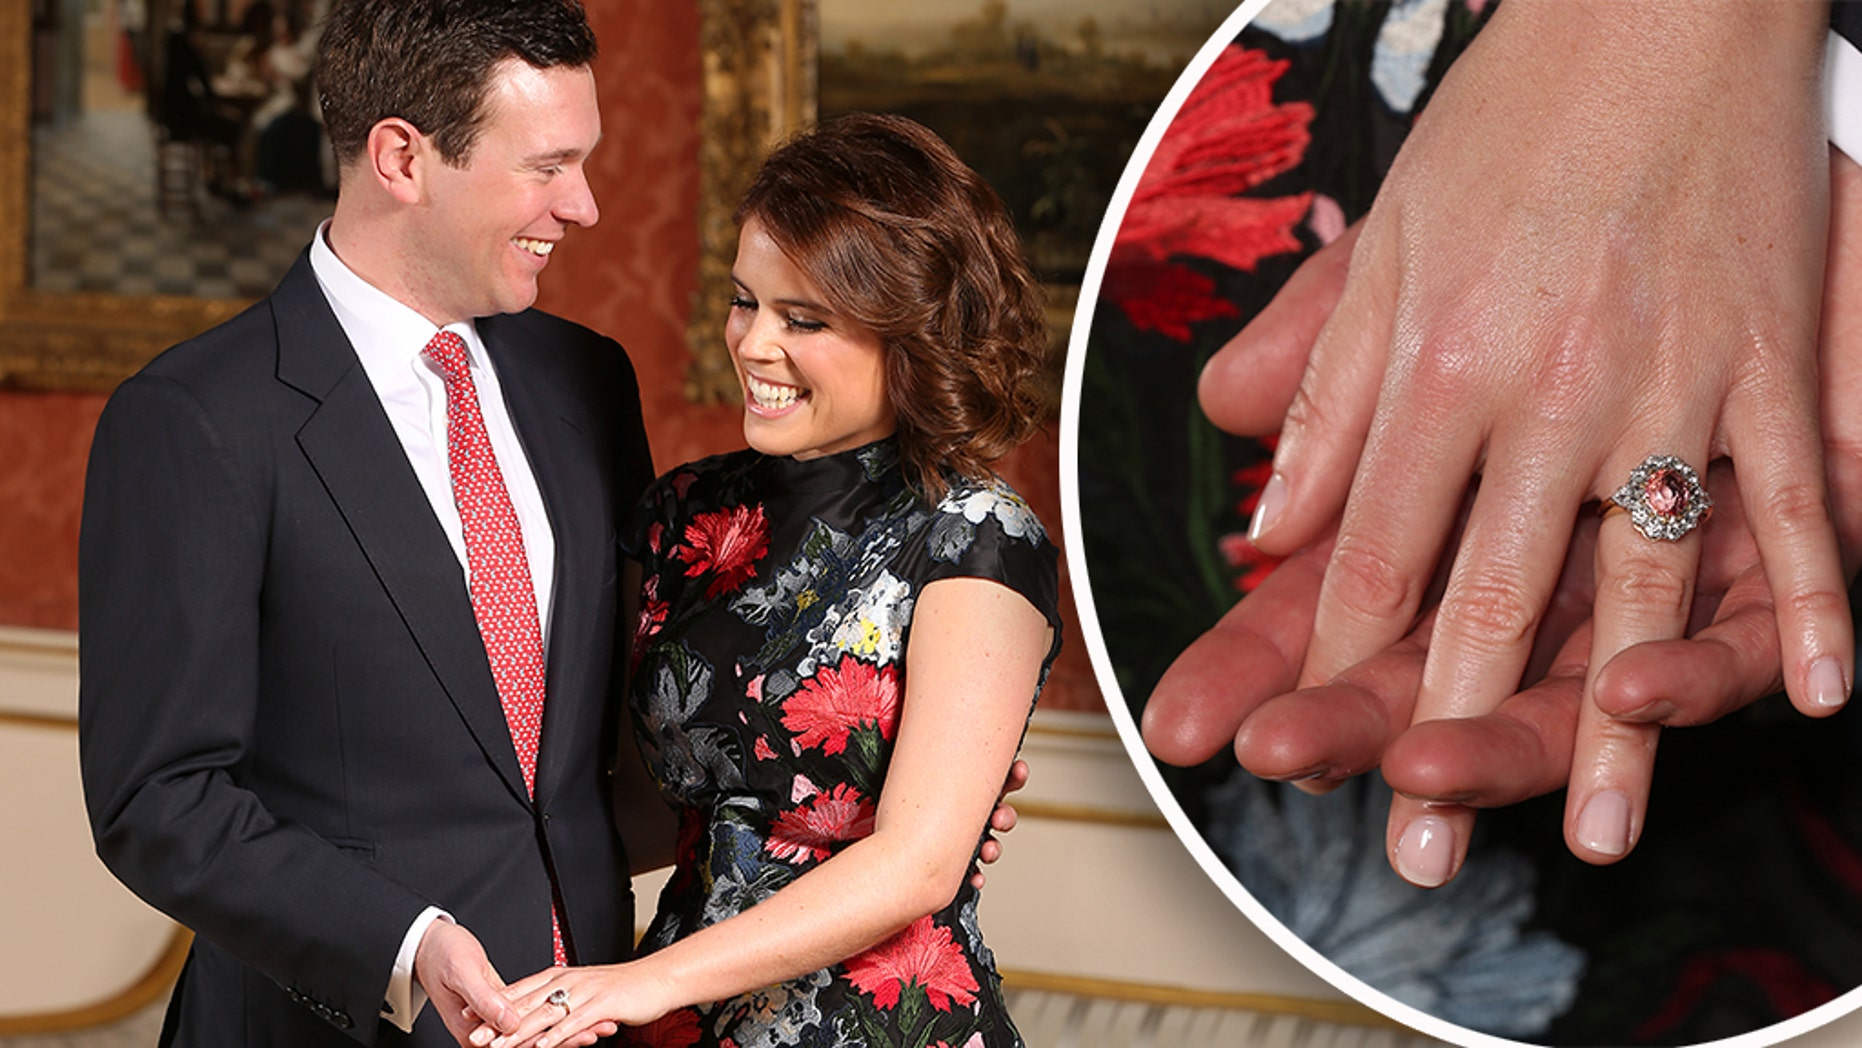 Everything you need to know about Princess Eugenie's wedding